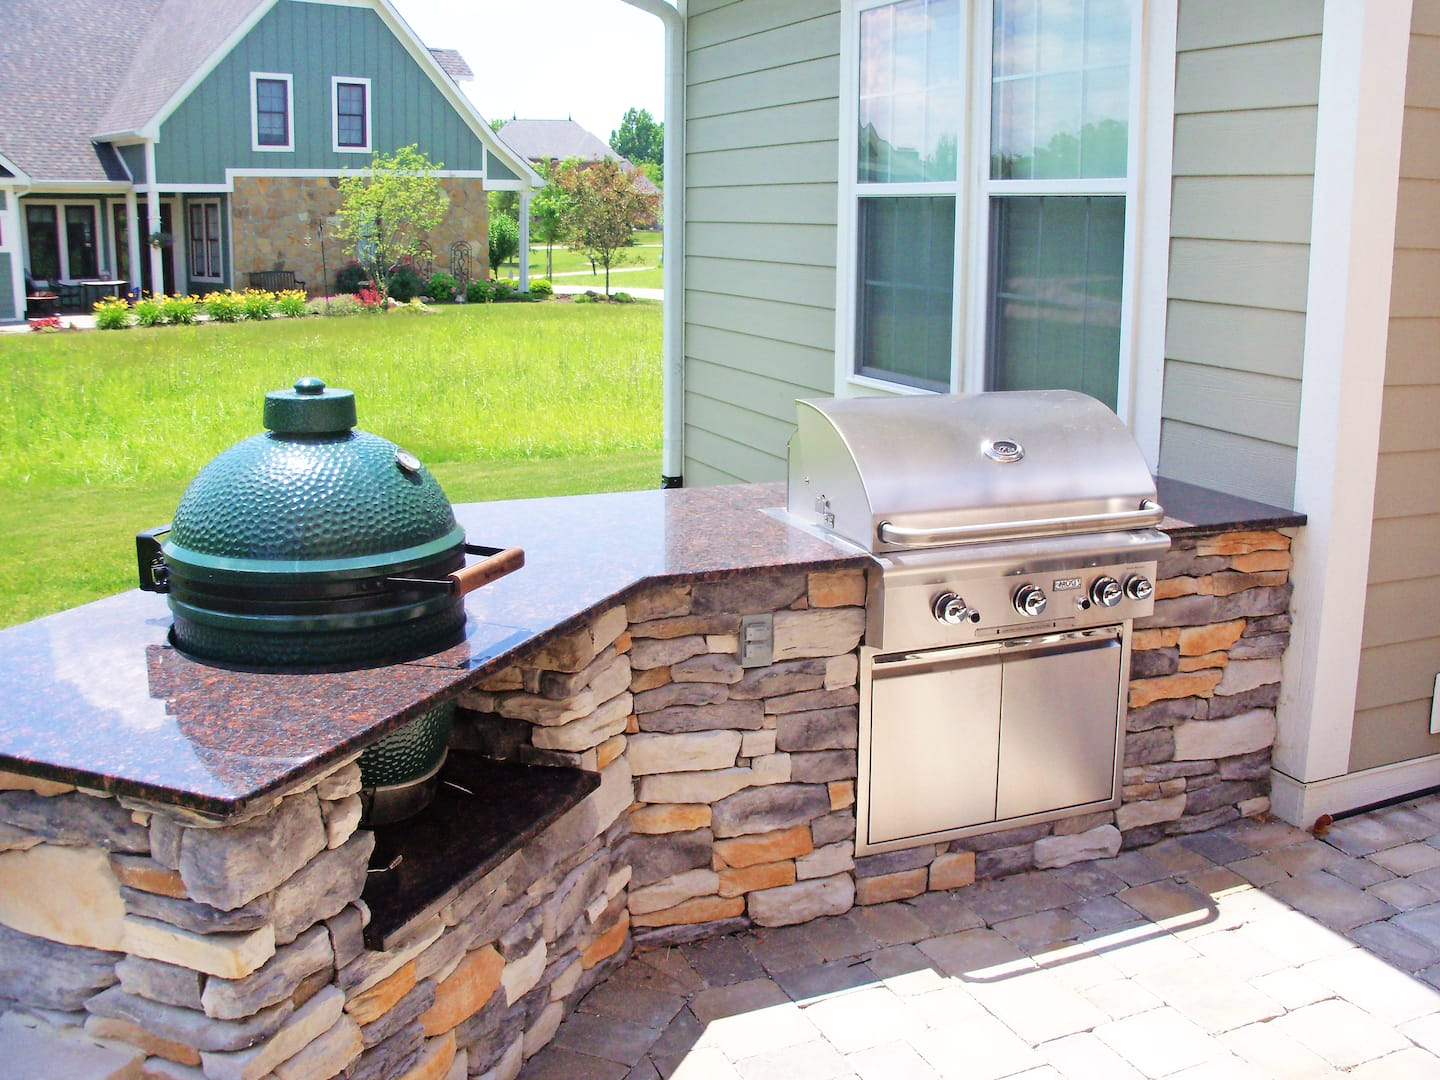 Sensational 5 Things To Consider Before Building An Outdoor Kitchen Interior Design Ideas Ghosoteloinfo